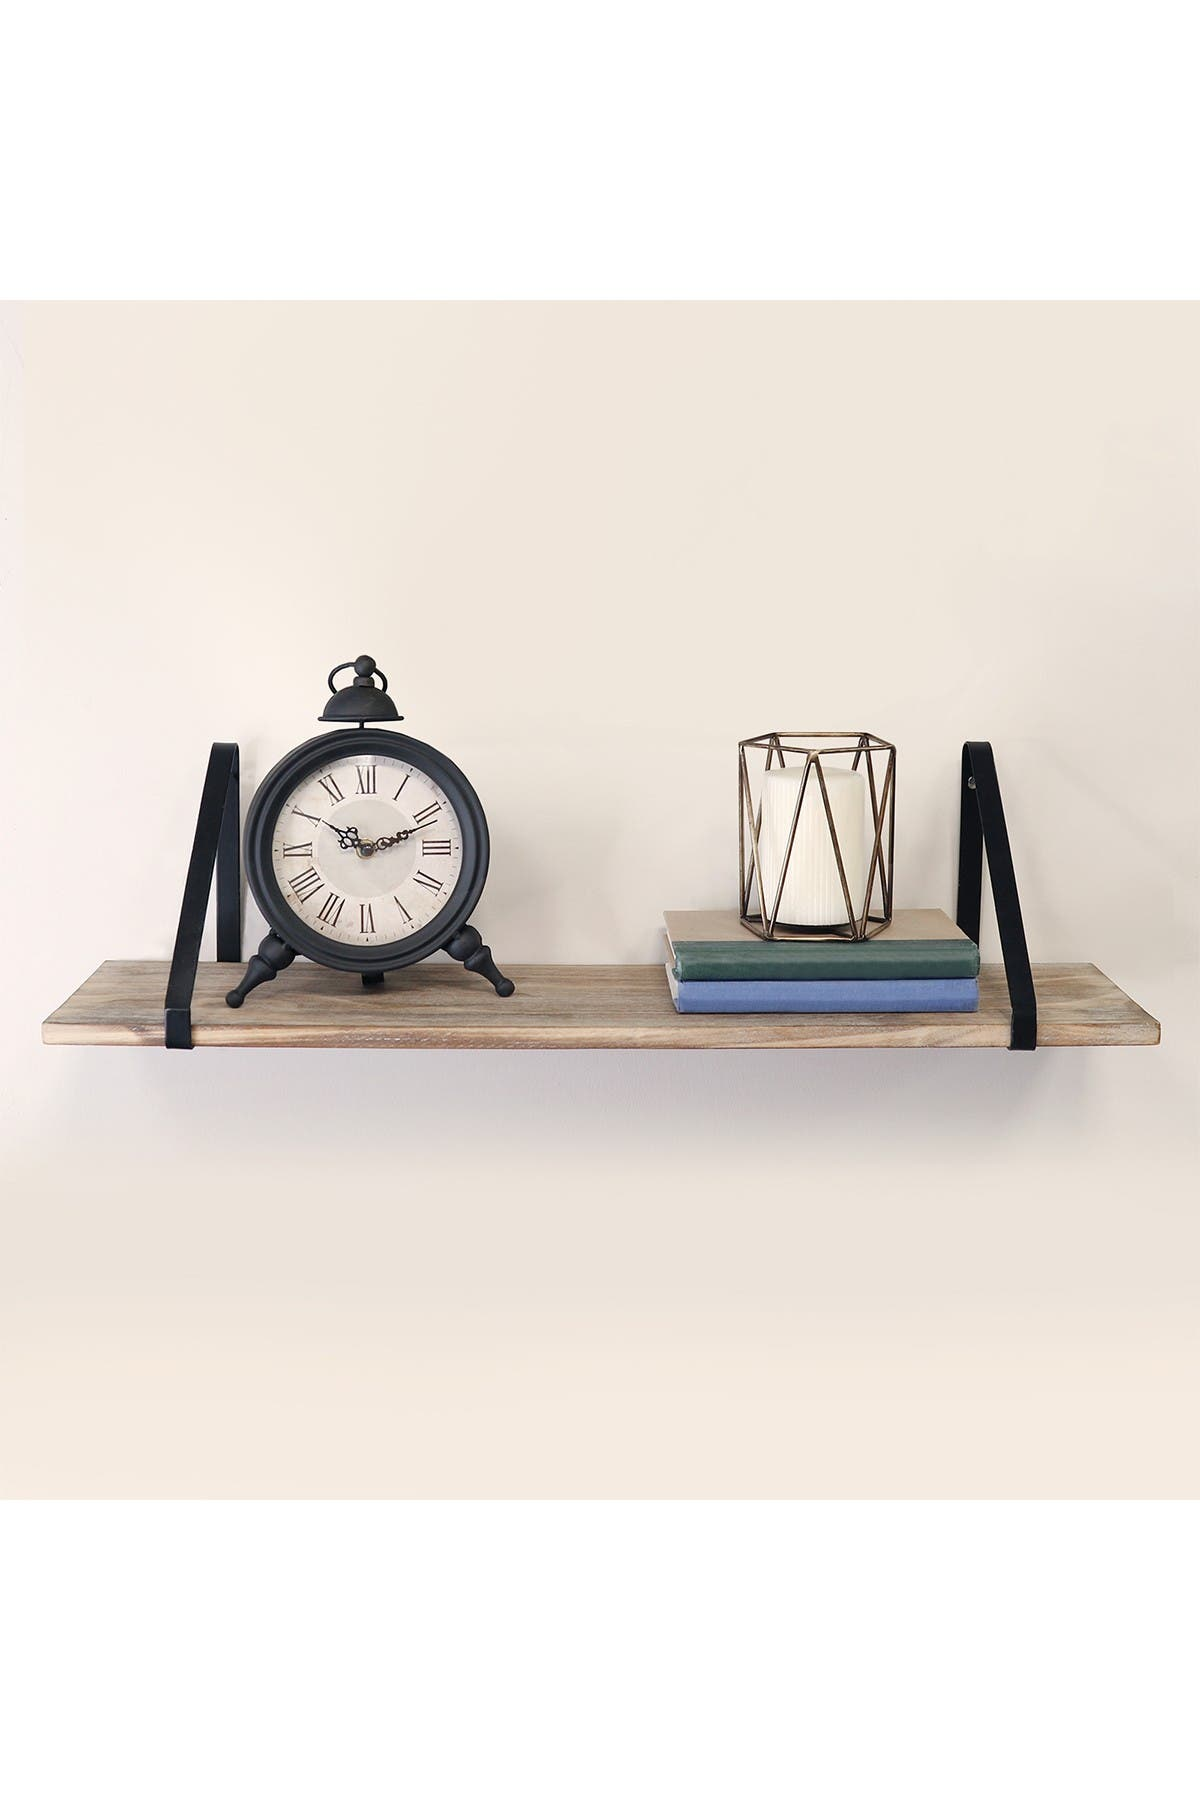 Image of Stratton Home Natural Wood Shelf